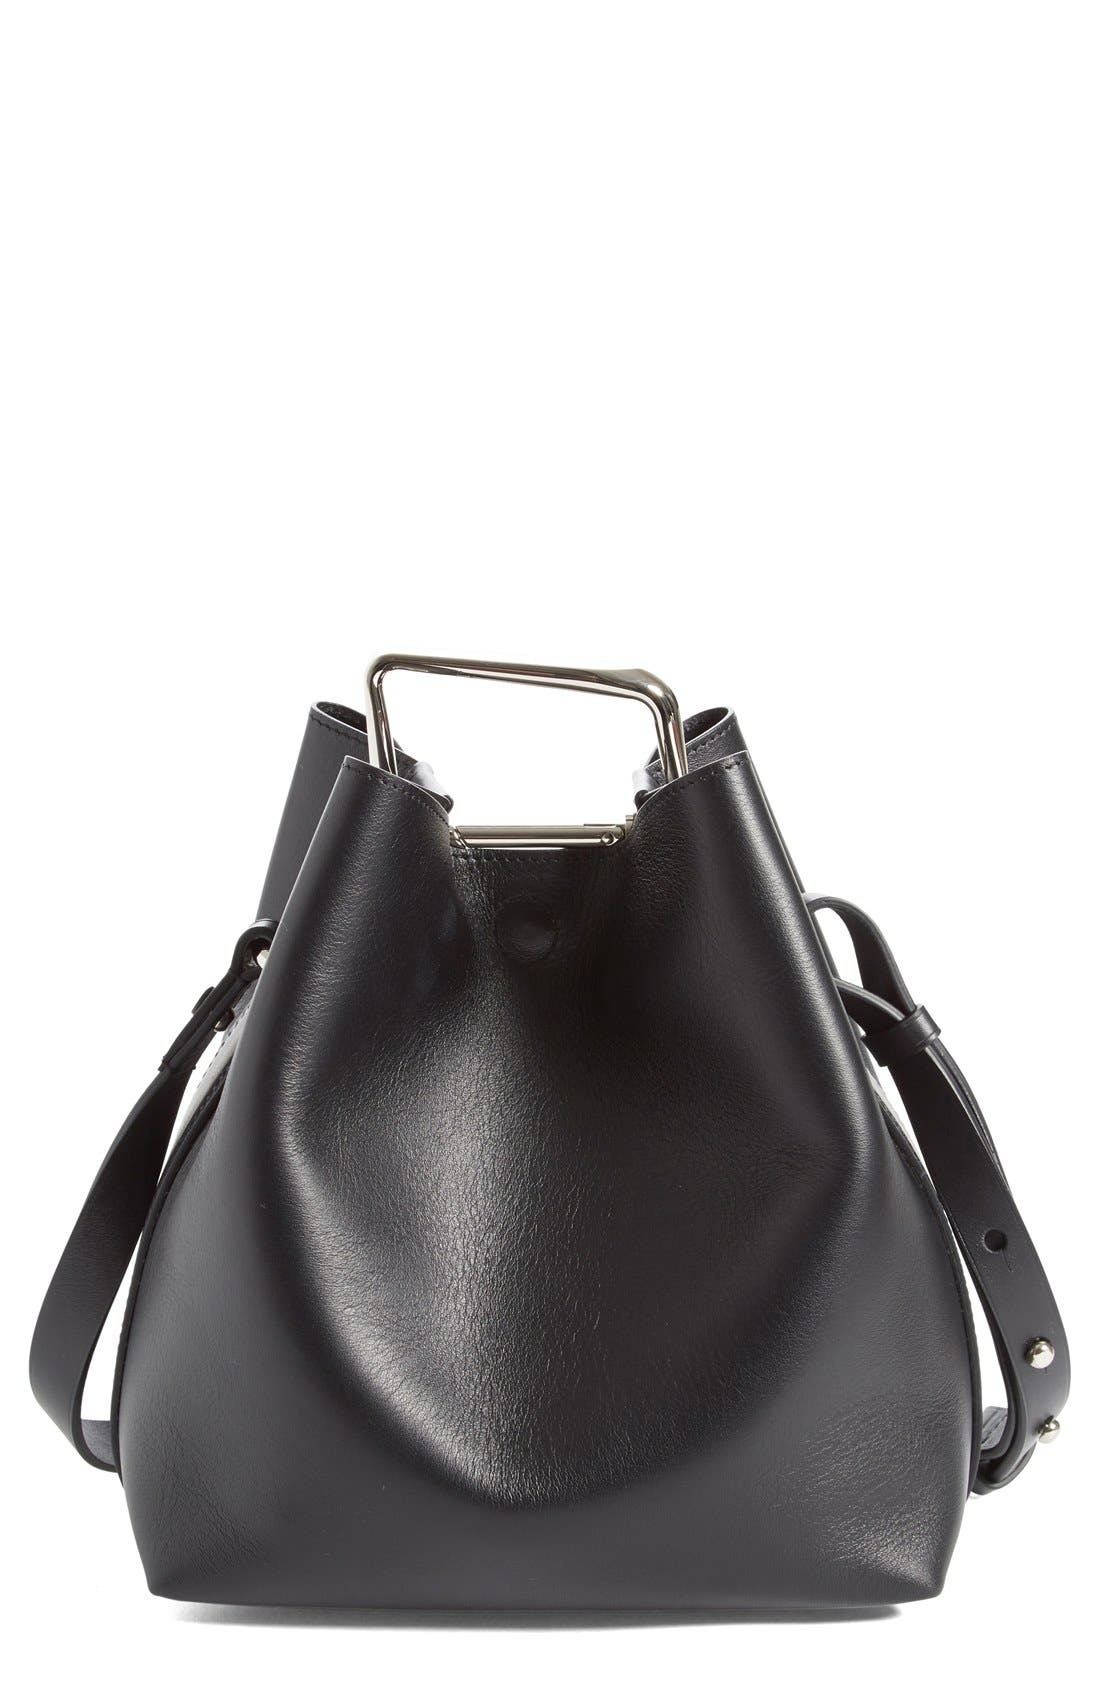 'Mini Quill' Leather Bucket Bag,                             Main thumbnail 1, color,                             Black